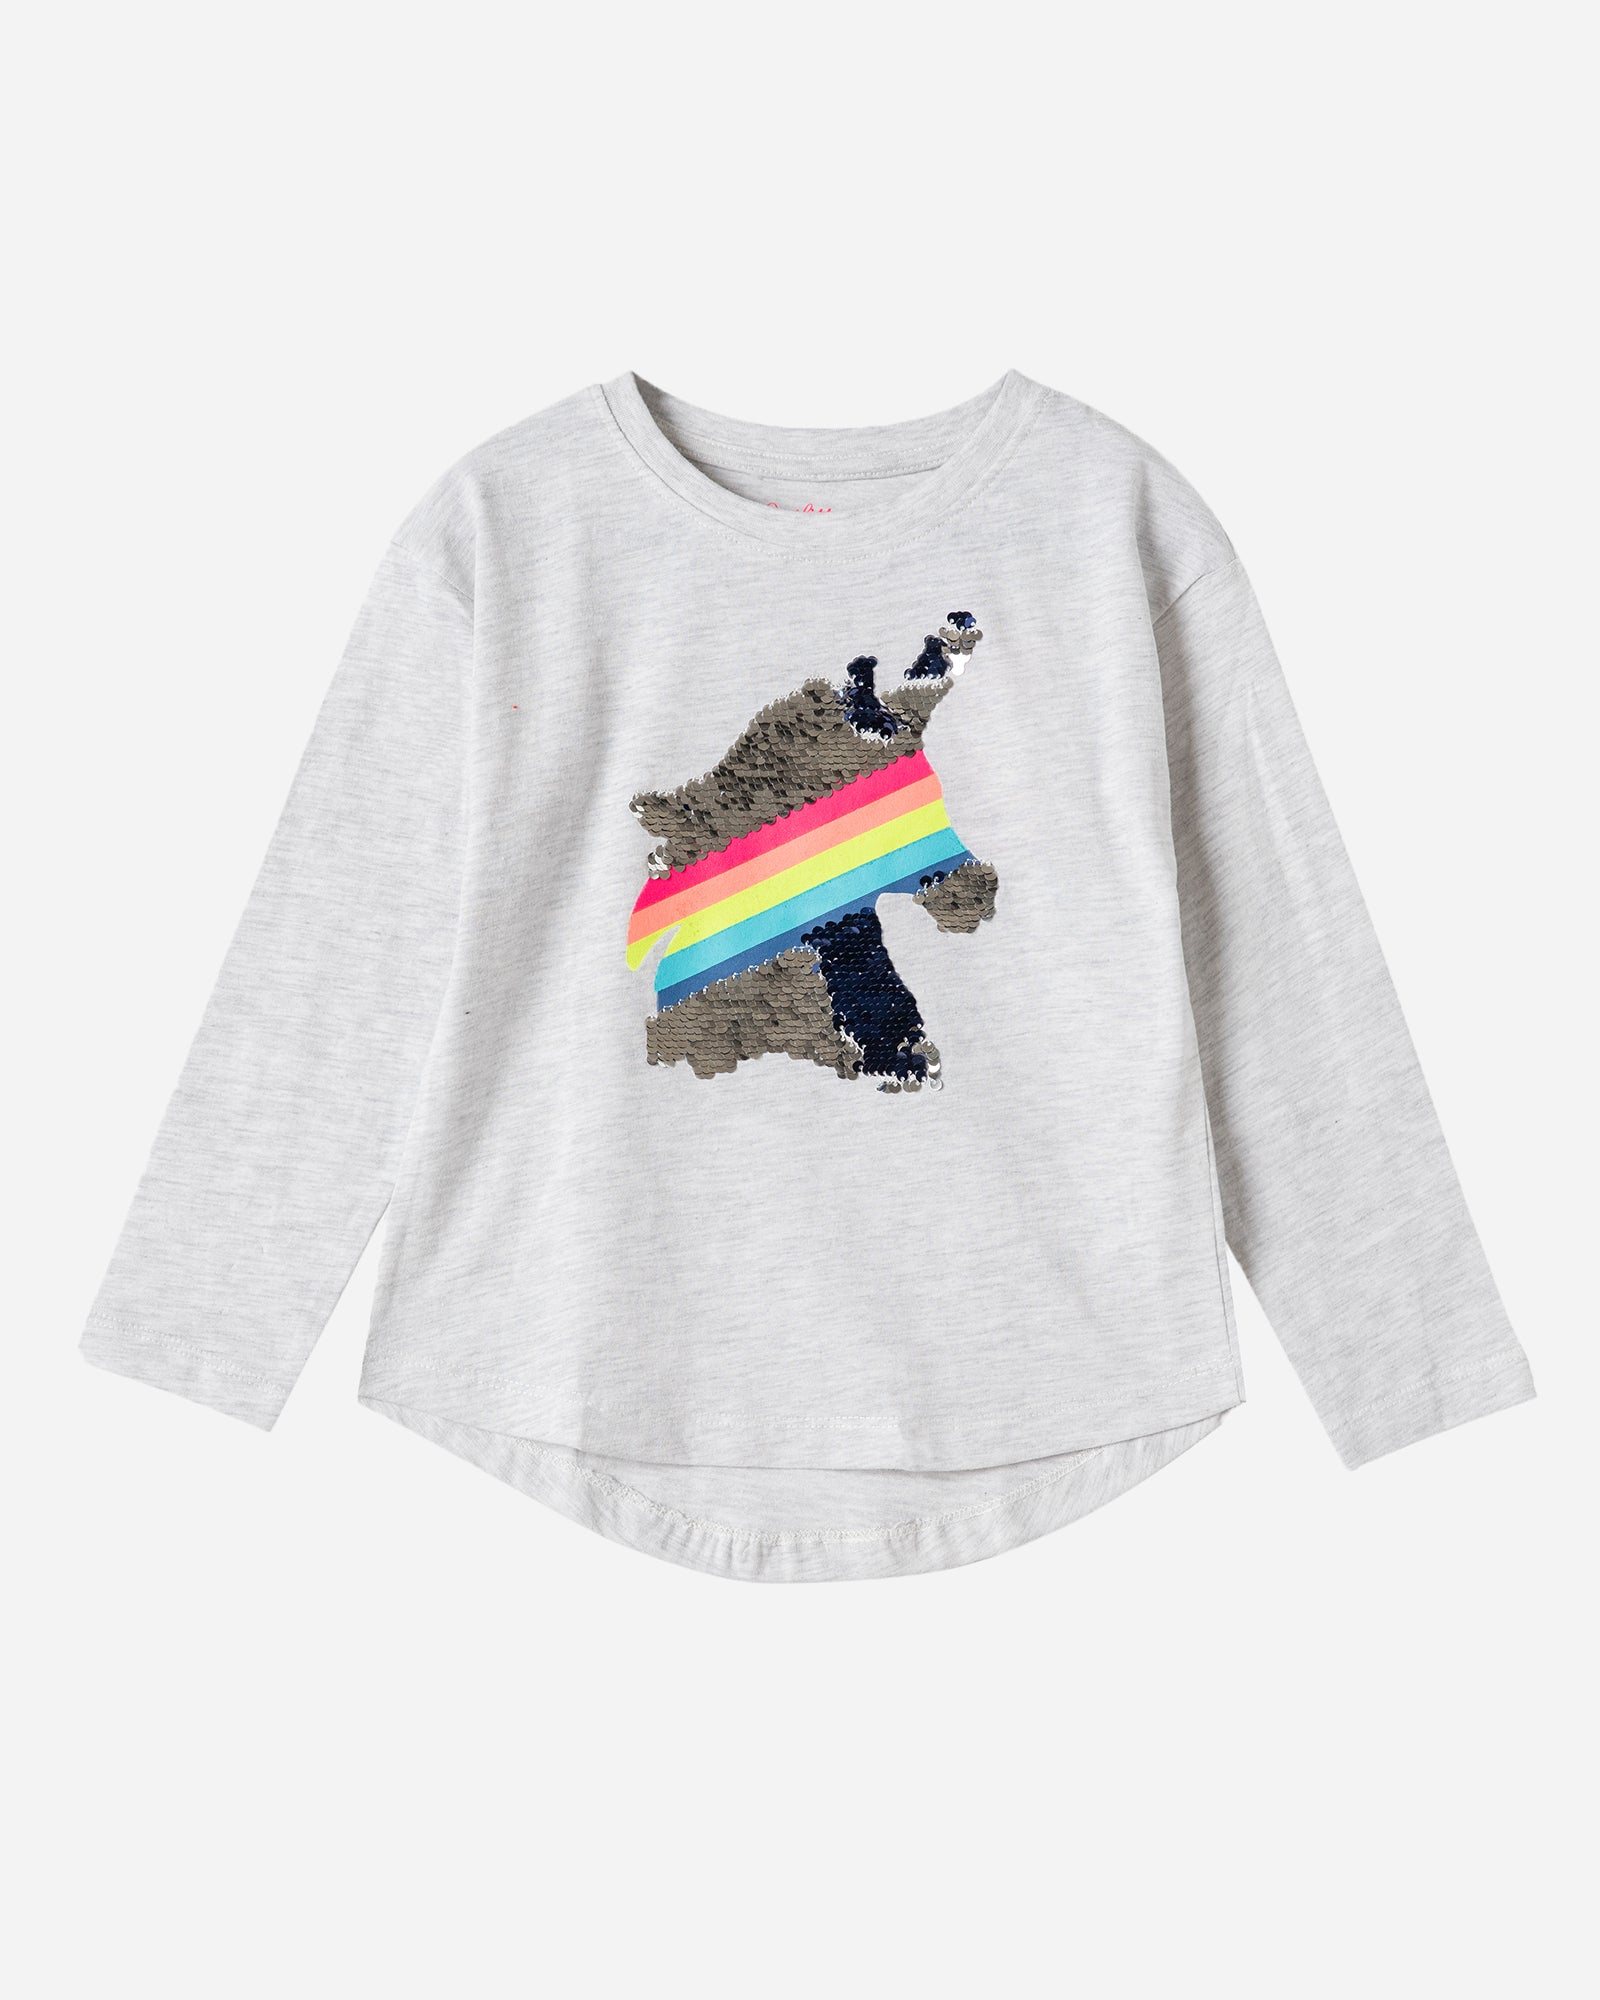 Sequined Unicorn T-Shirt